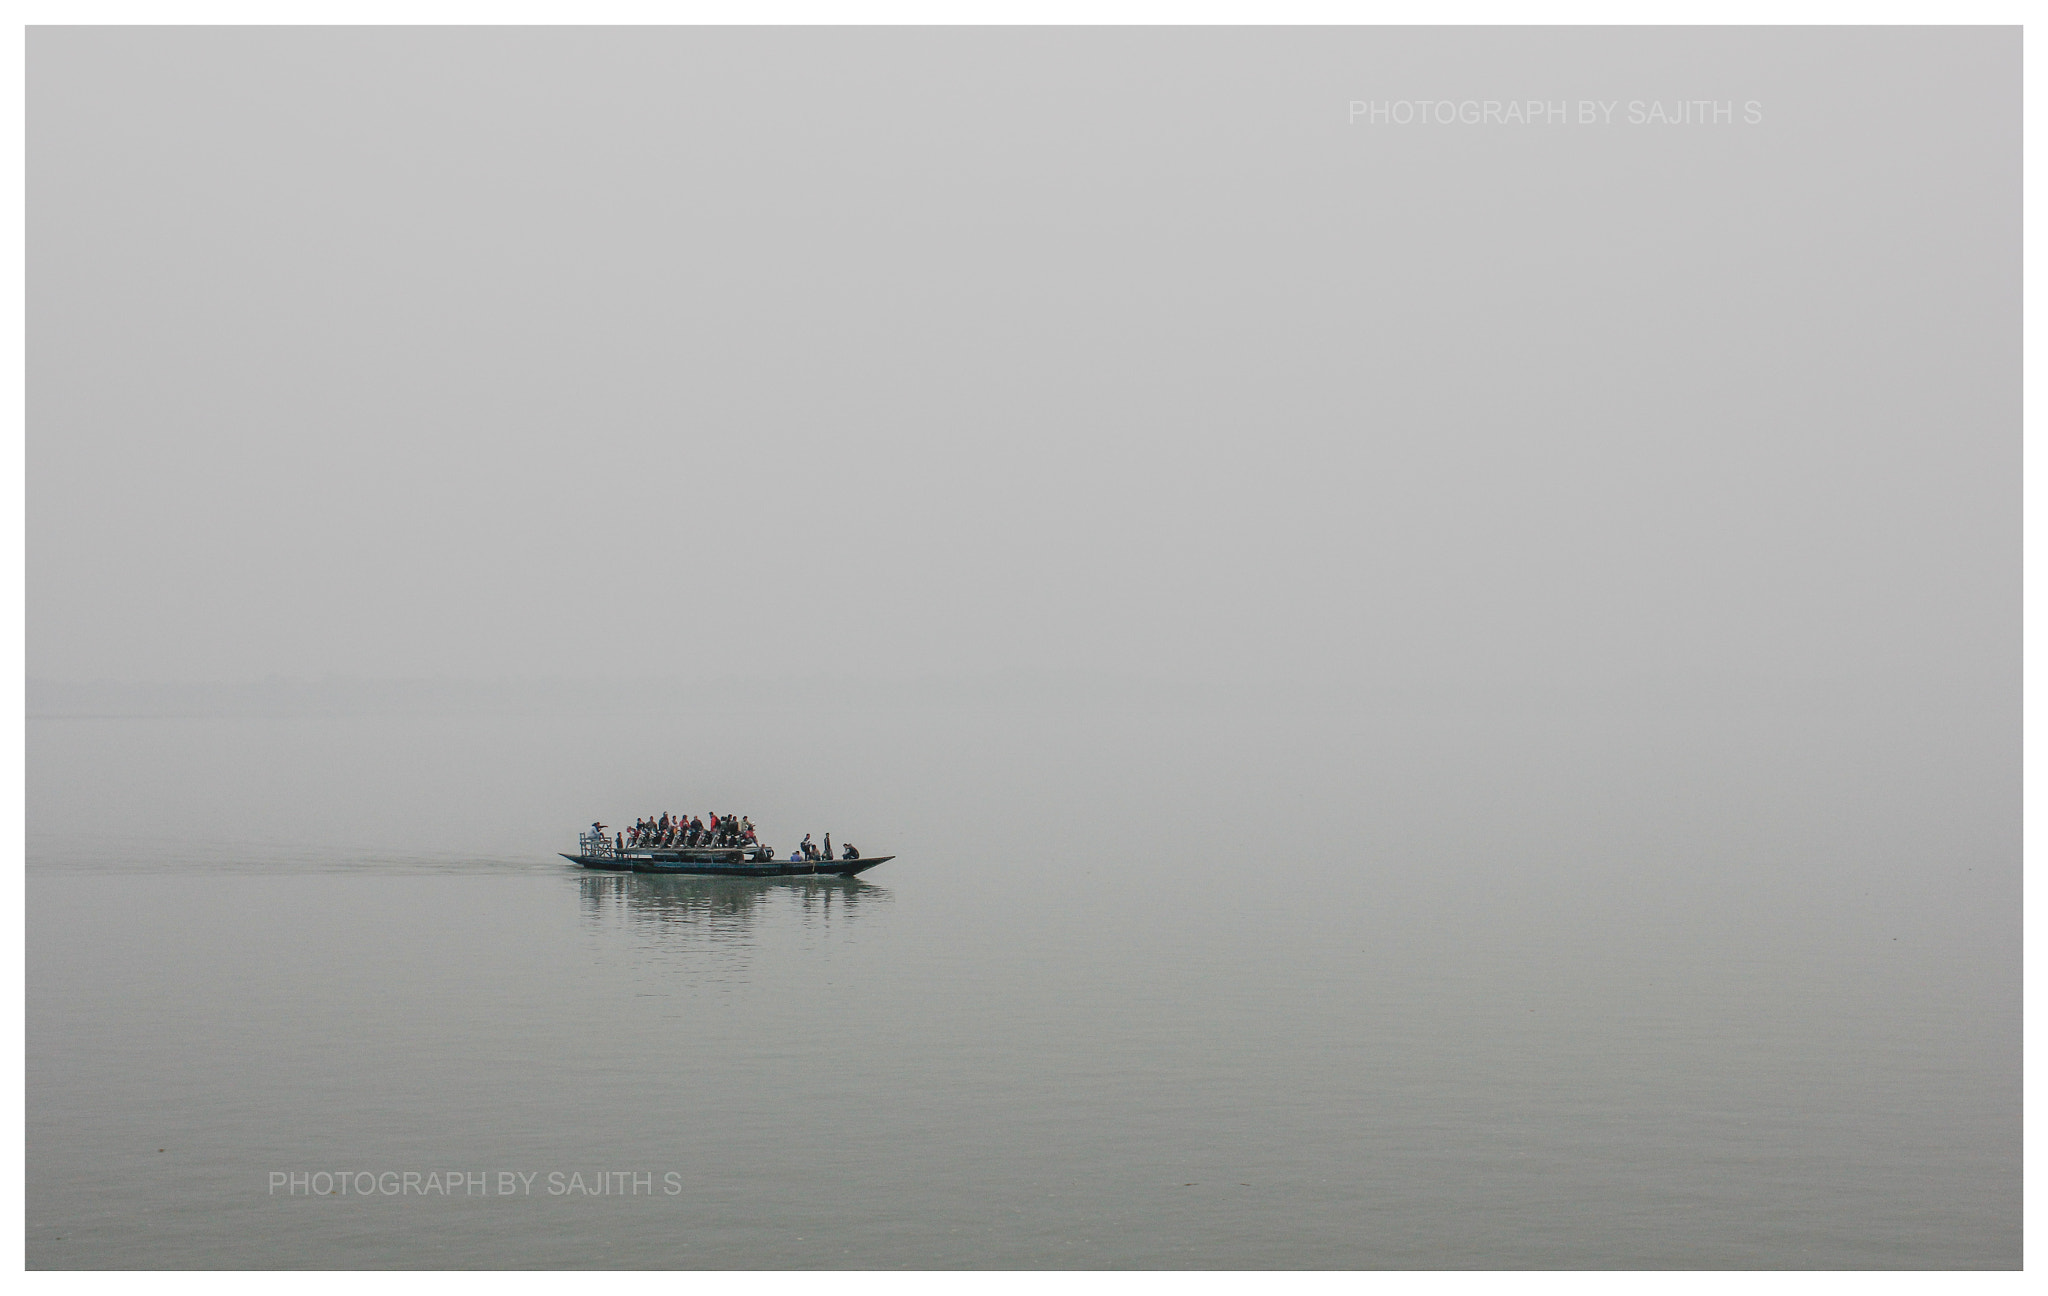 Photograph Minimalist Photography by Sajith S on 500px